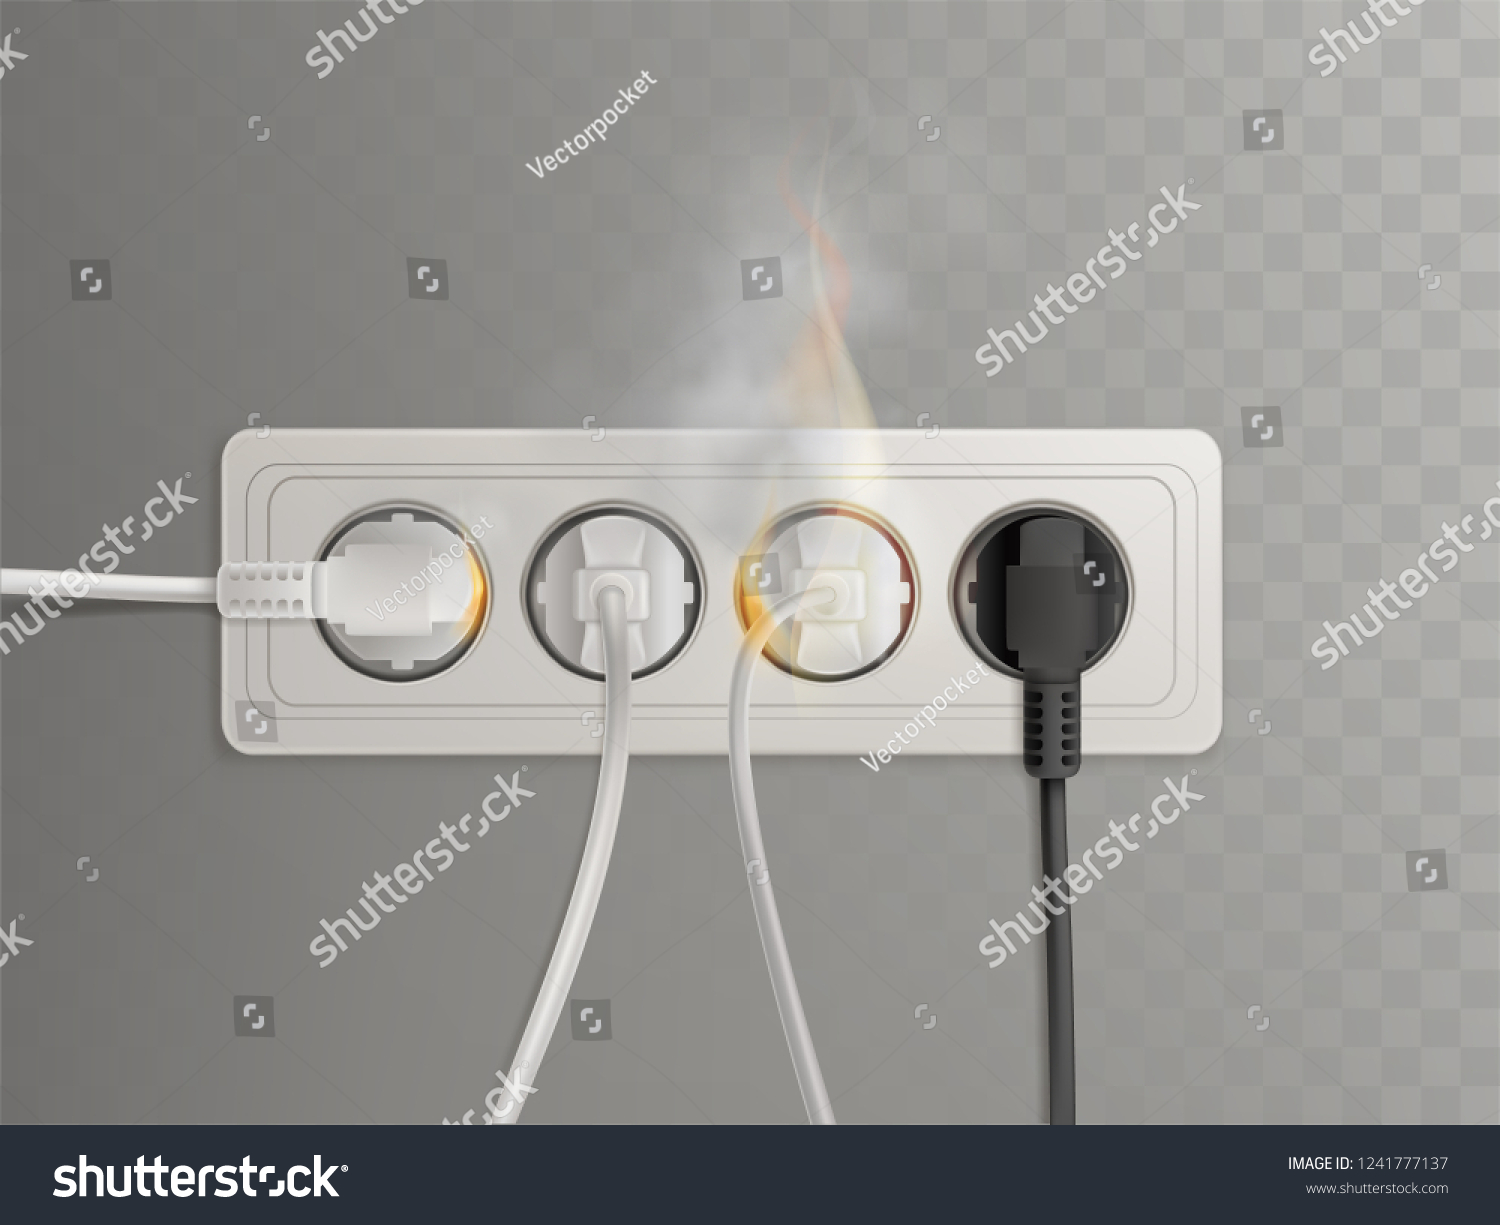 Flaming Power Plugs Horizontal Electrical Socket Stock Vector Realistic Wiring Diagram In Illustration Isolated On Transparent Background Short